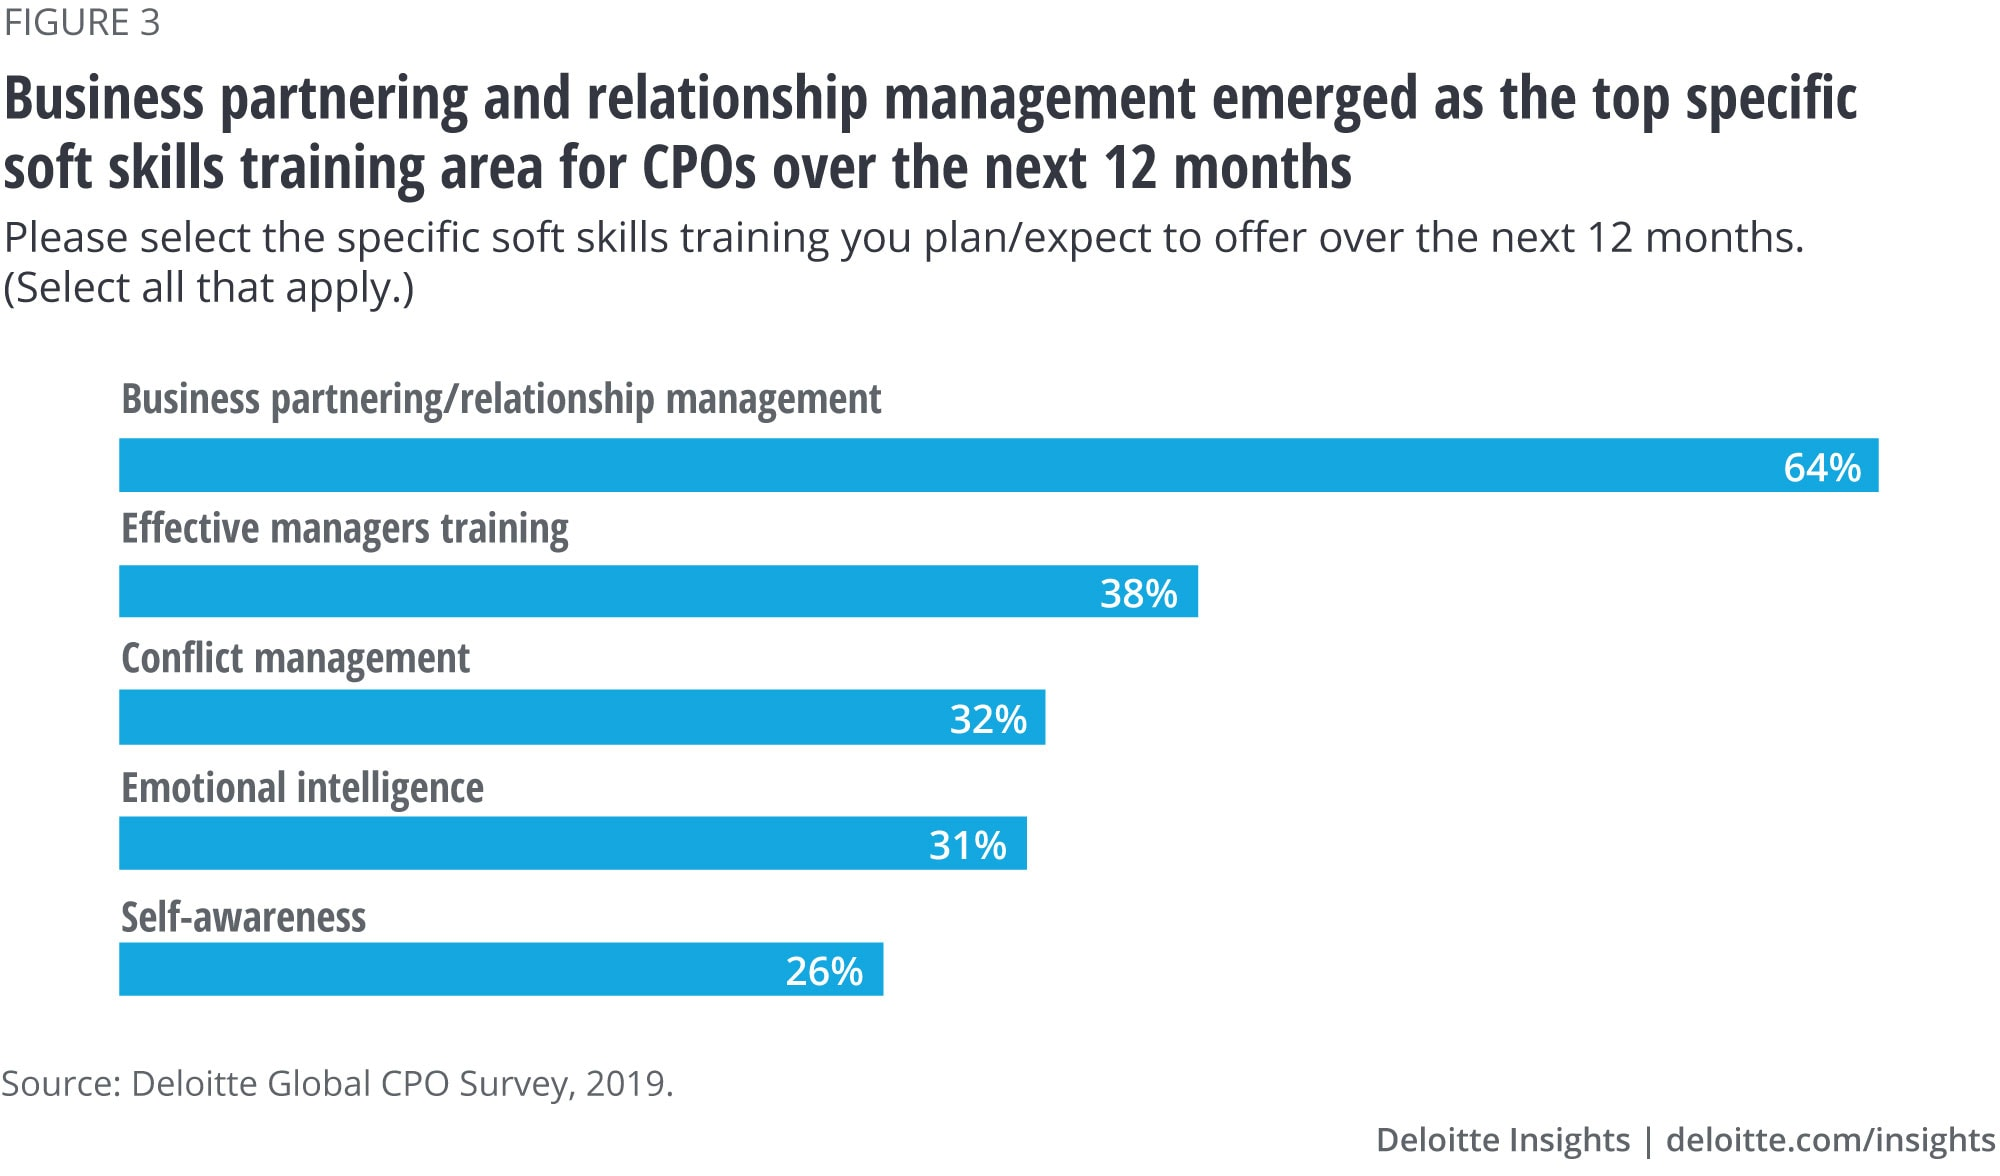 Business partnering and relationship management emerged as the top specific soft skills training area for CPOs over the next 12 months